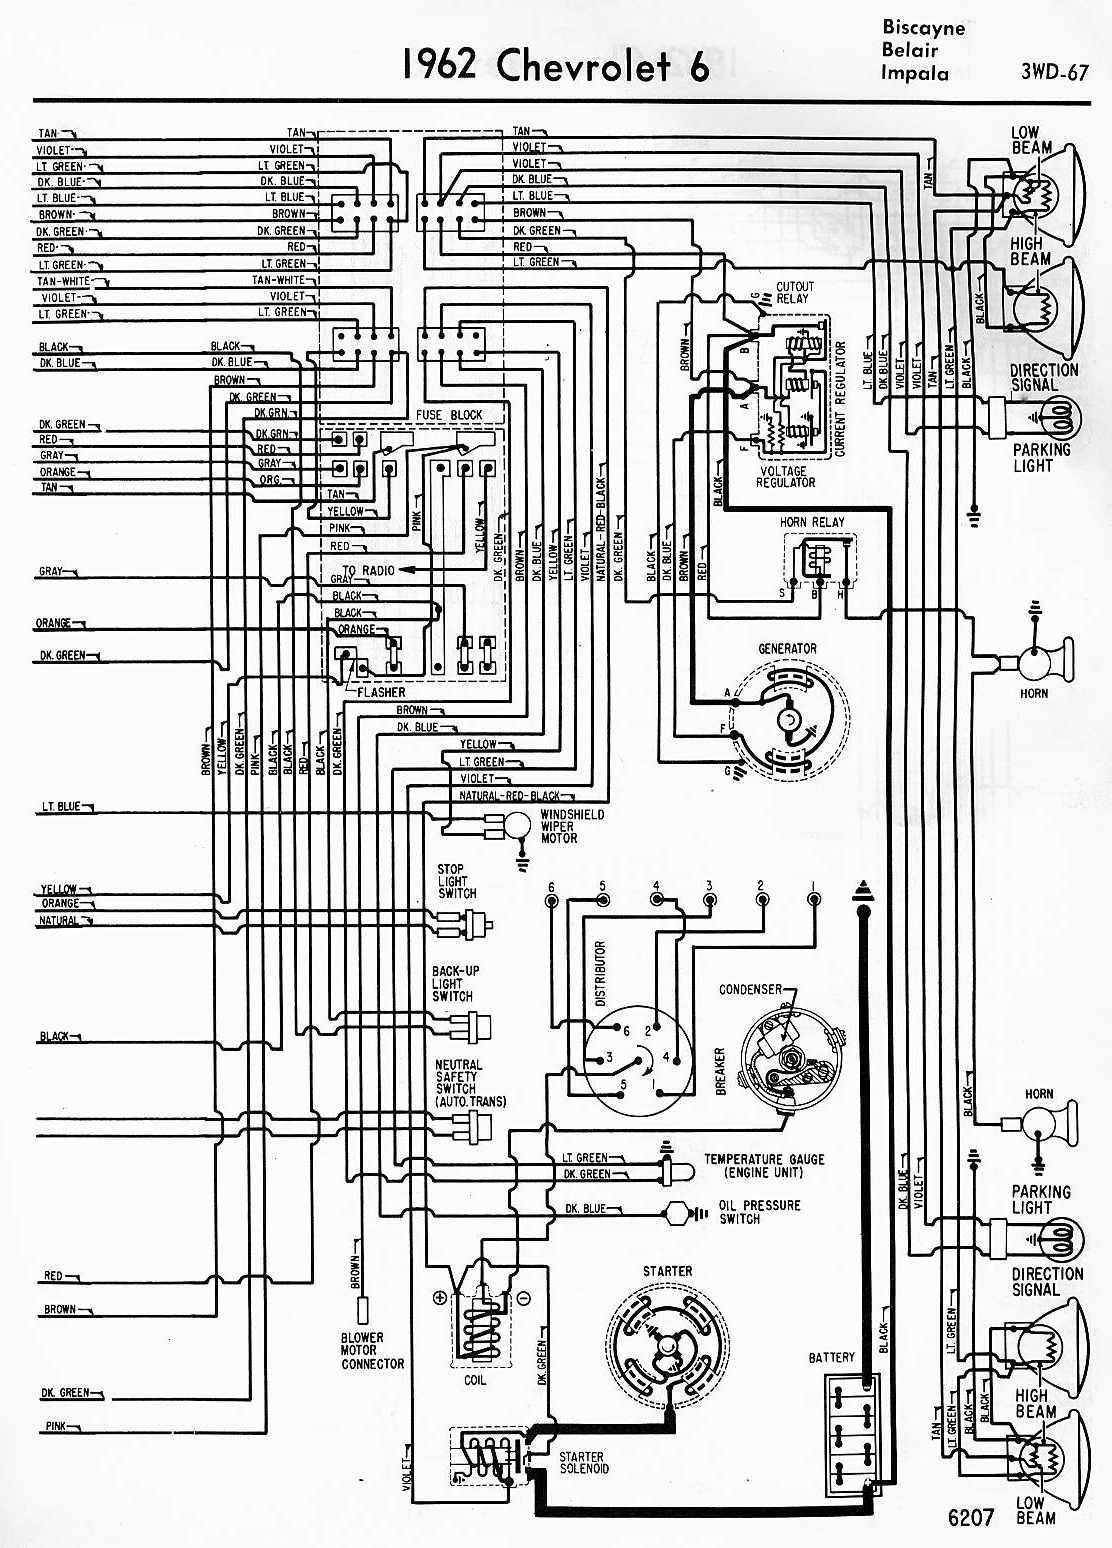 hight resolution of 66 6 cylinder gm wiring harness diagram wiring diagrams rh 3 kunstvorort waltrop de automotive wiring